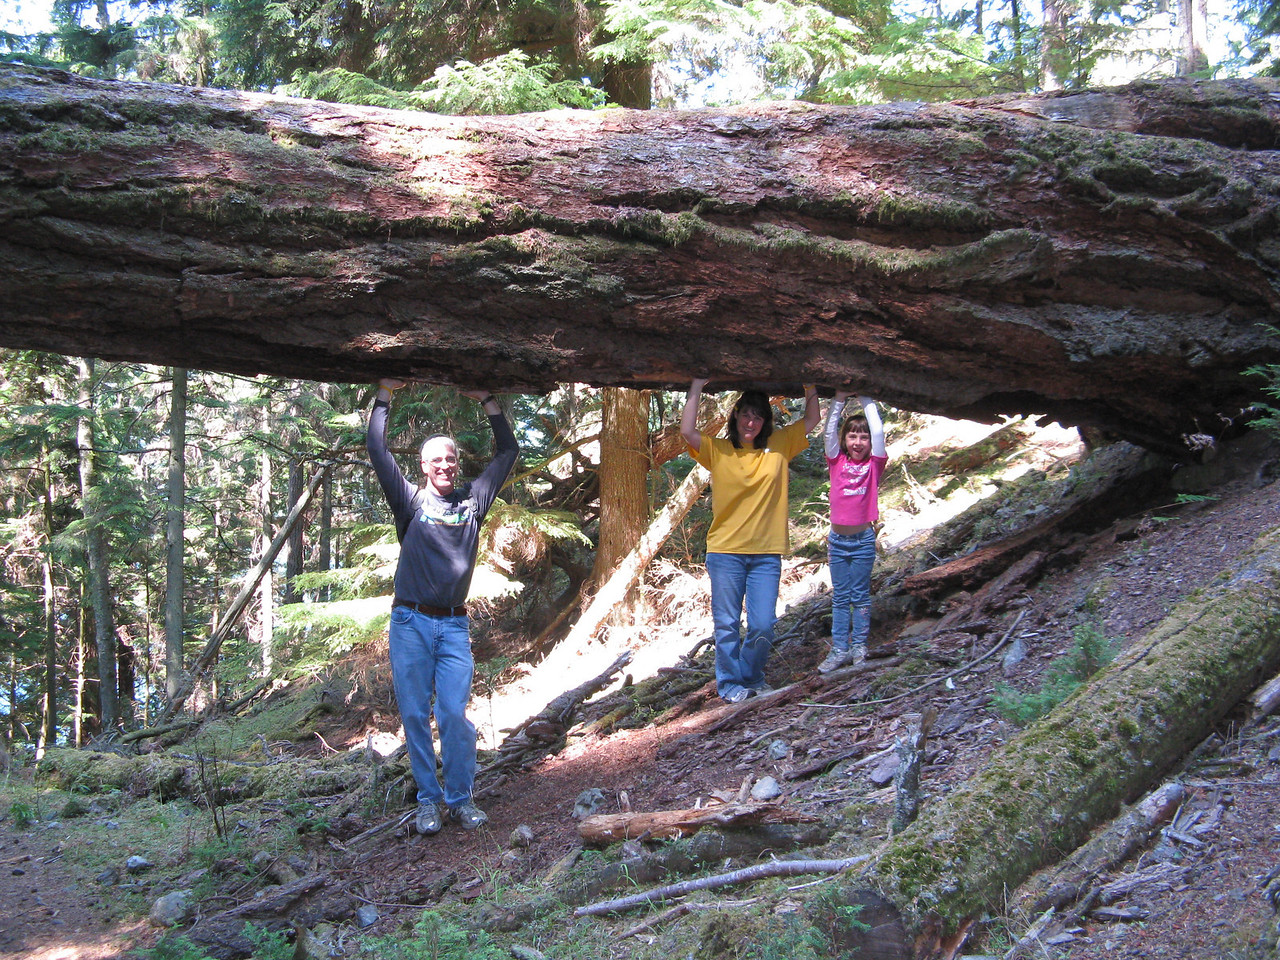 Woah ... This tree is heavy!  Glenn, Sonia and Abby holding up a tree that has nearly fallen on the trail.  We hiked around Mountain Lake in Moran State Park on Orcas Island on Saturday.